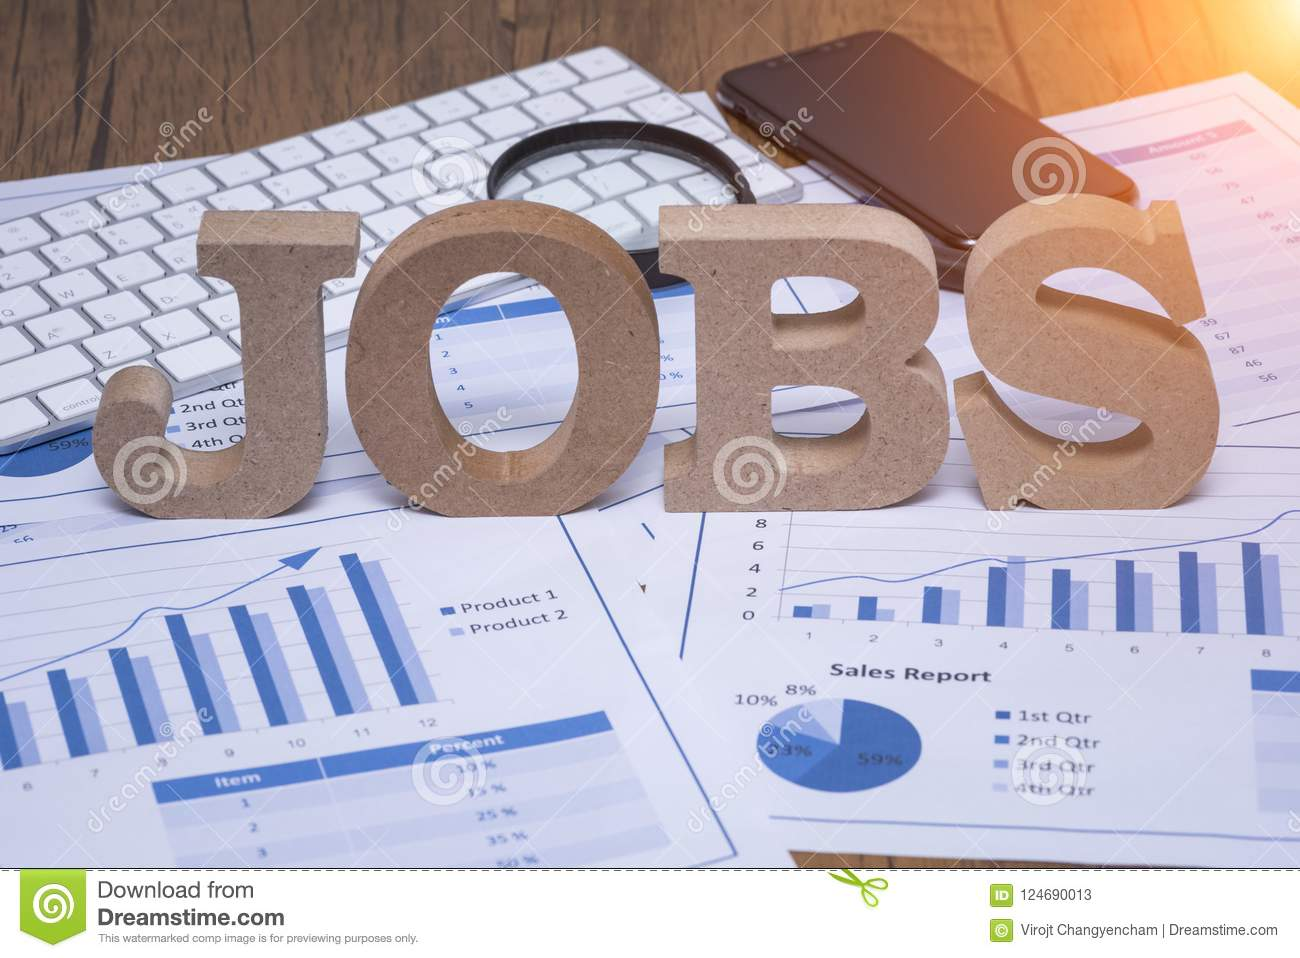 Unemployment office job search